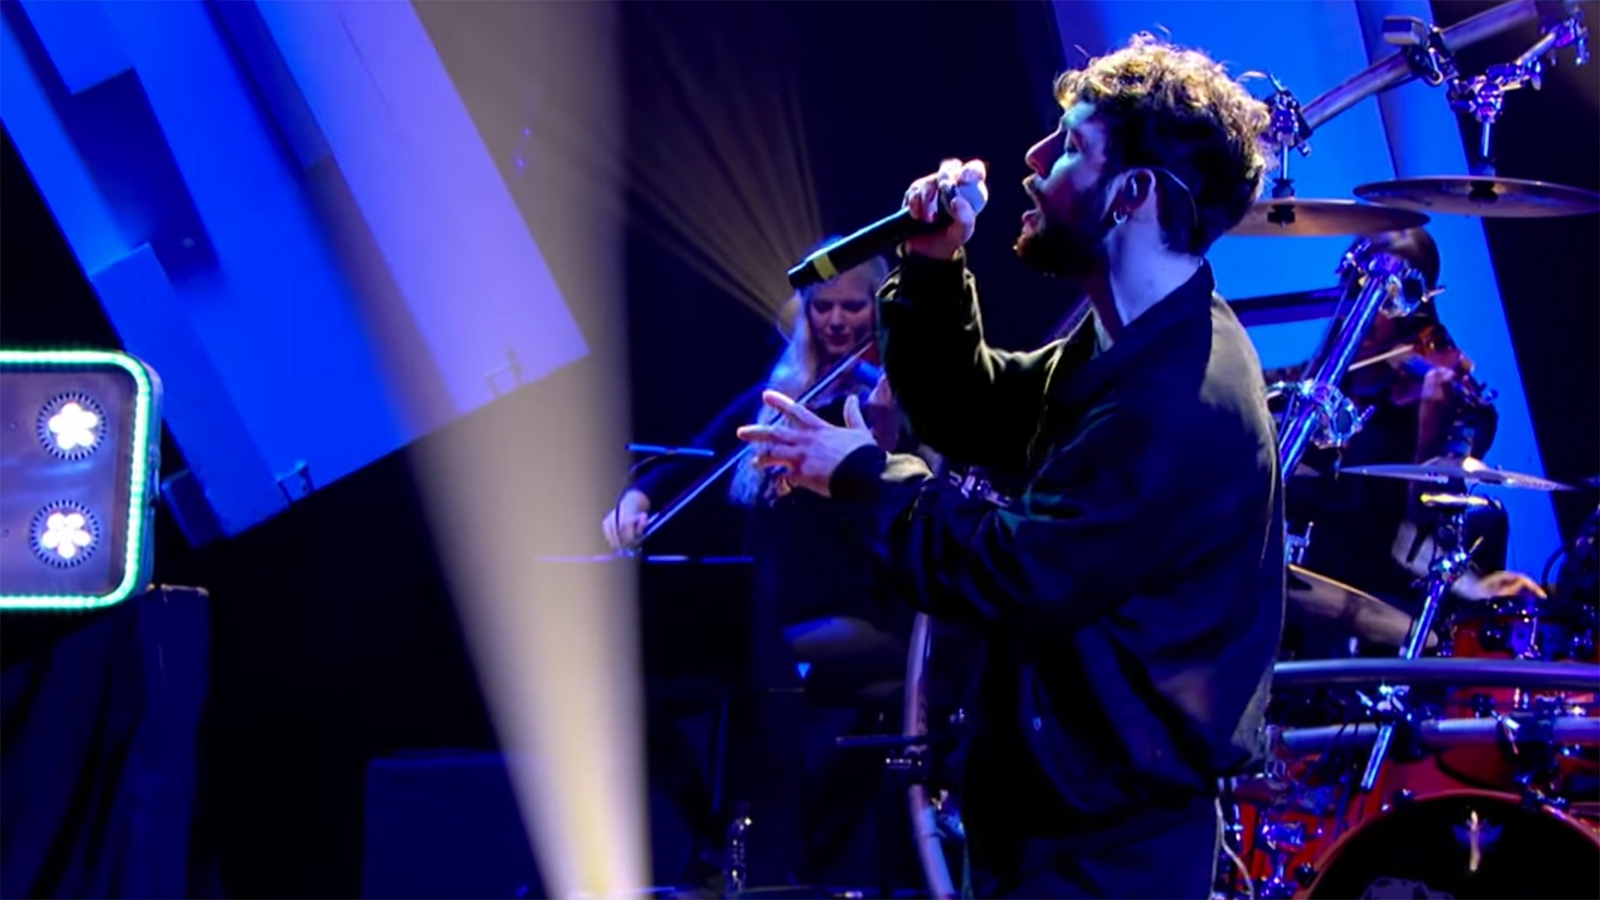 Tom Grennan makes TV debut on Later with.. Jools Holland